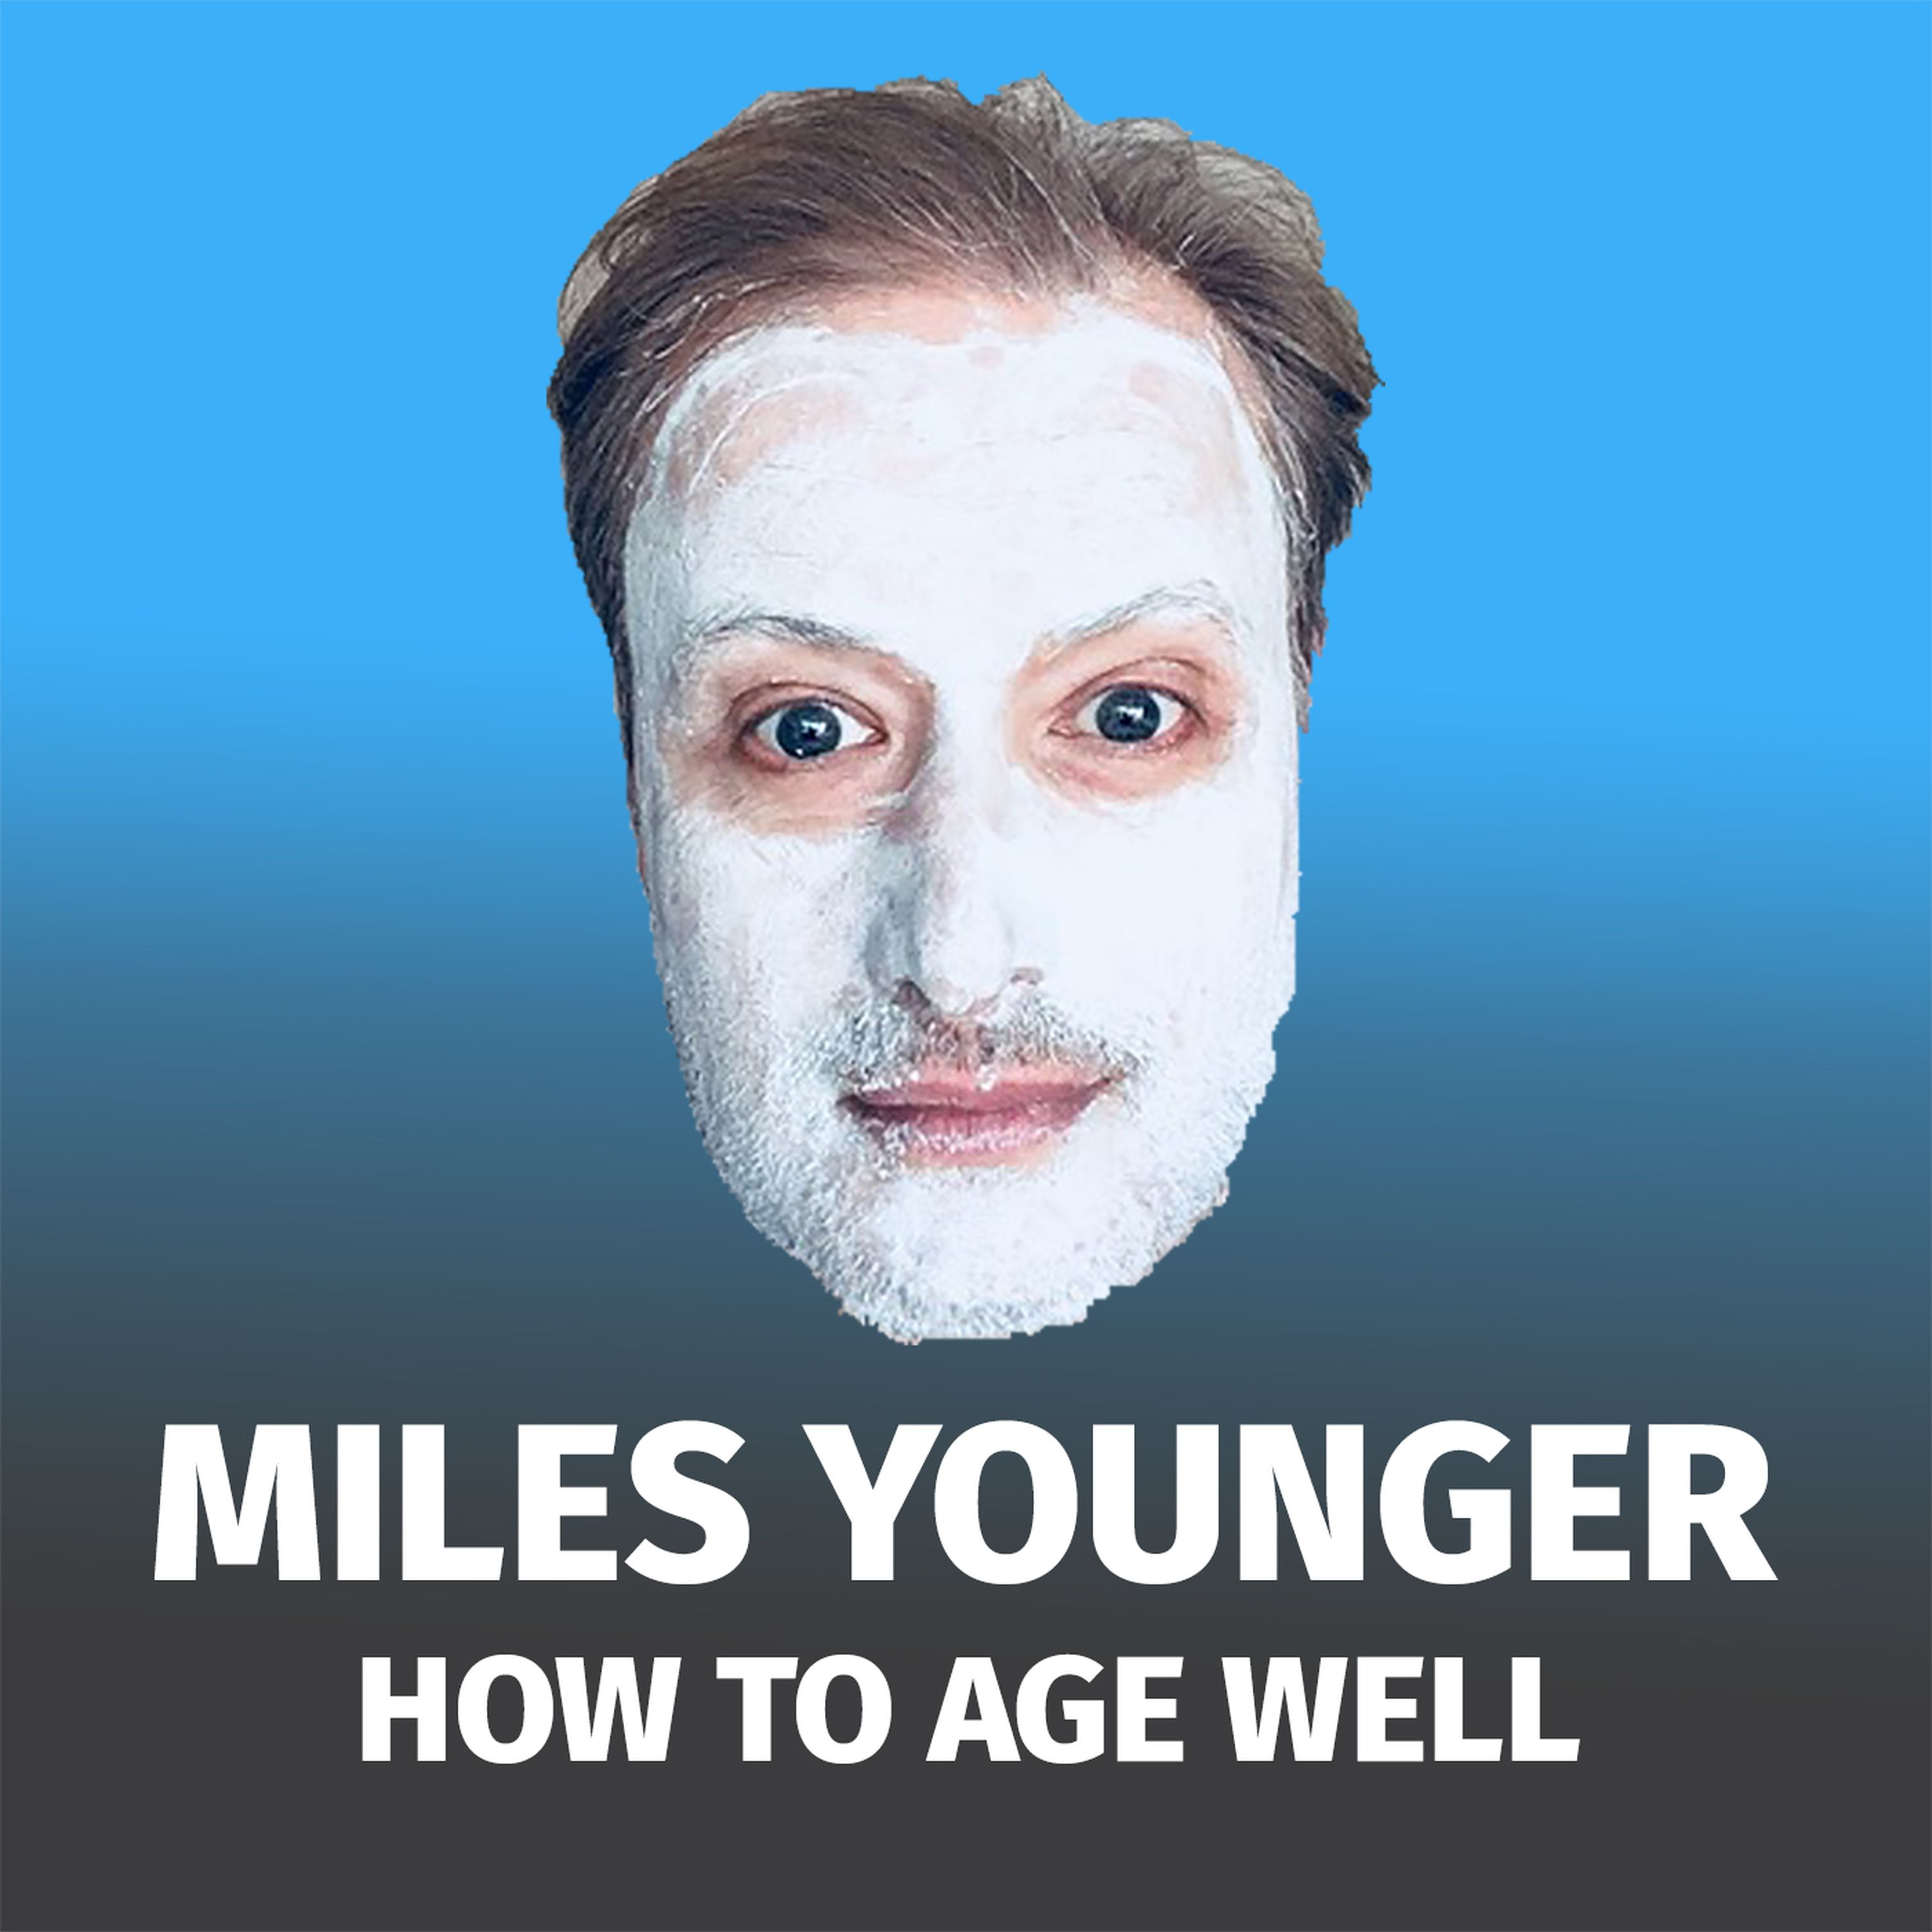 Miles Younger - How to Age Well - Buster Knight